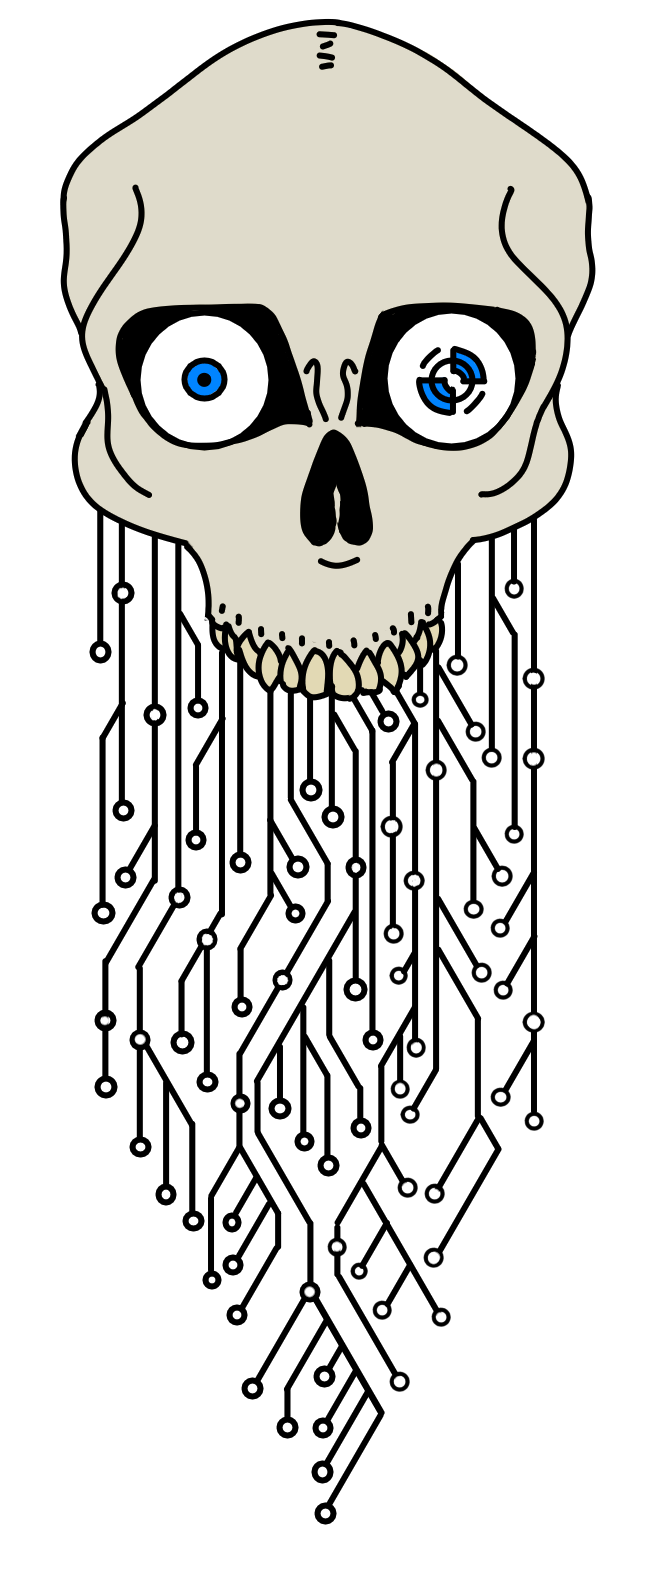 Most recent image: Skull and Circuit Tattoo Design